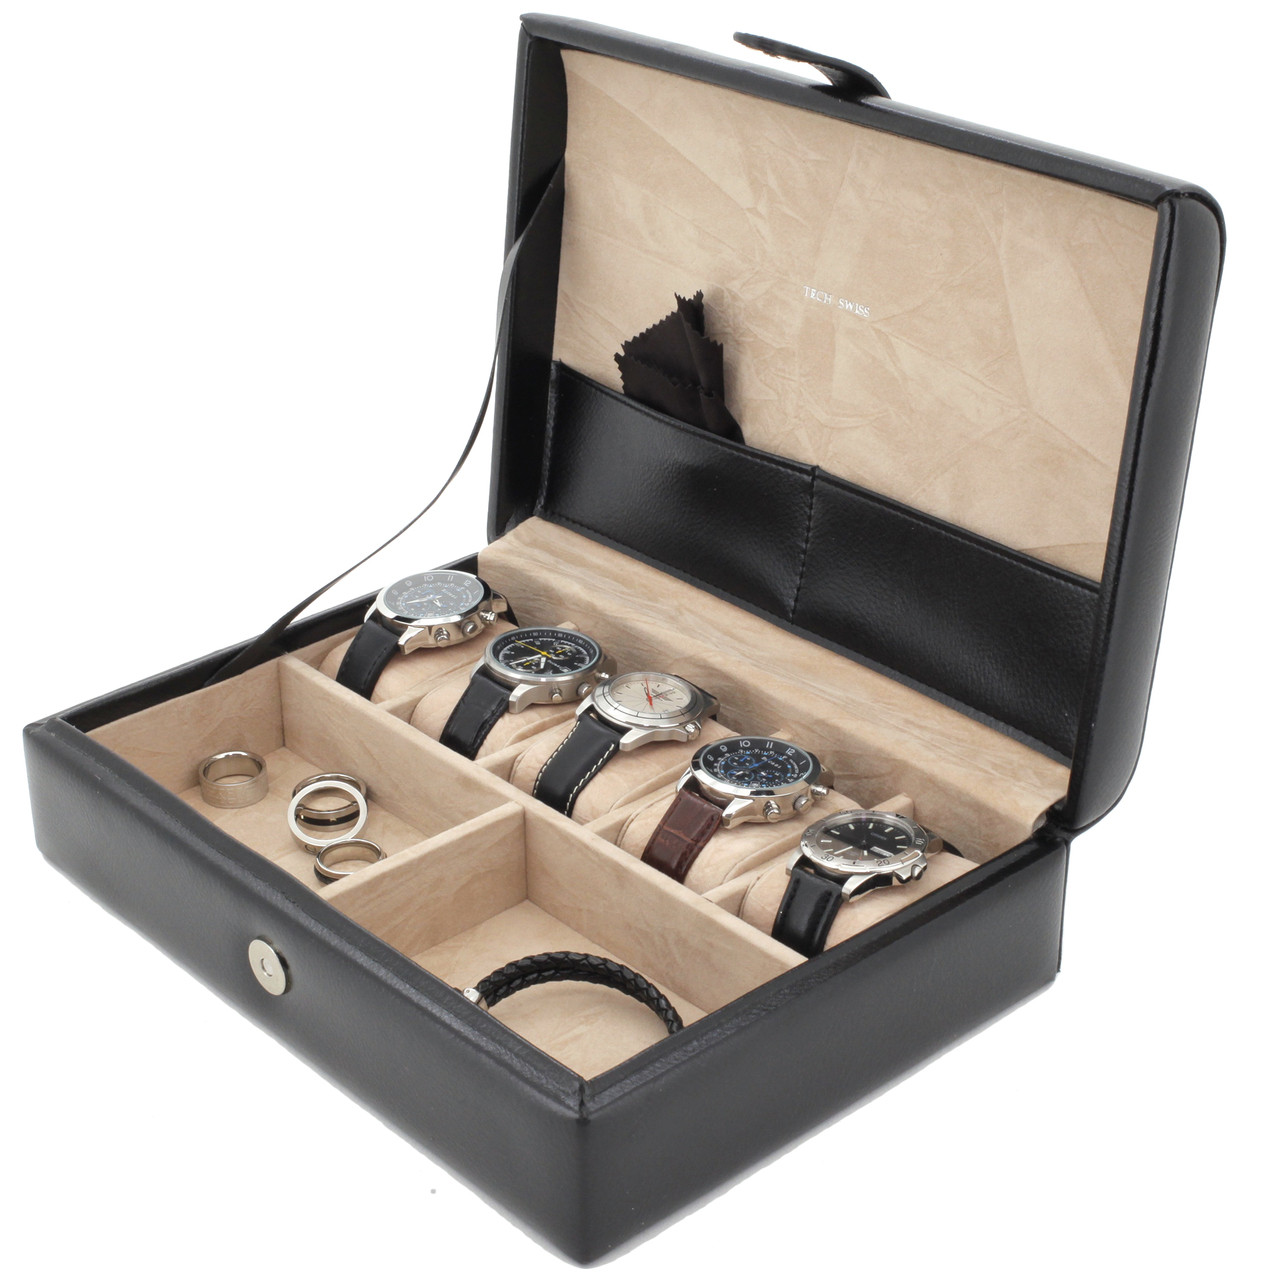 Mens Leather Valet For Watches Rings Keys TechSwiss Organizers